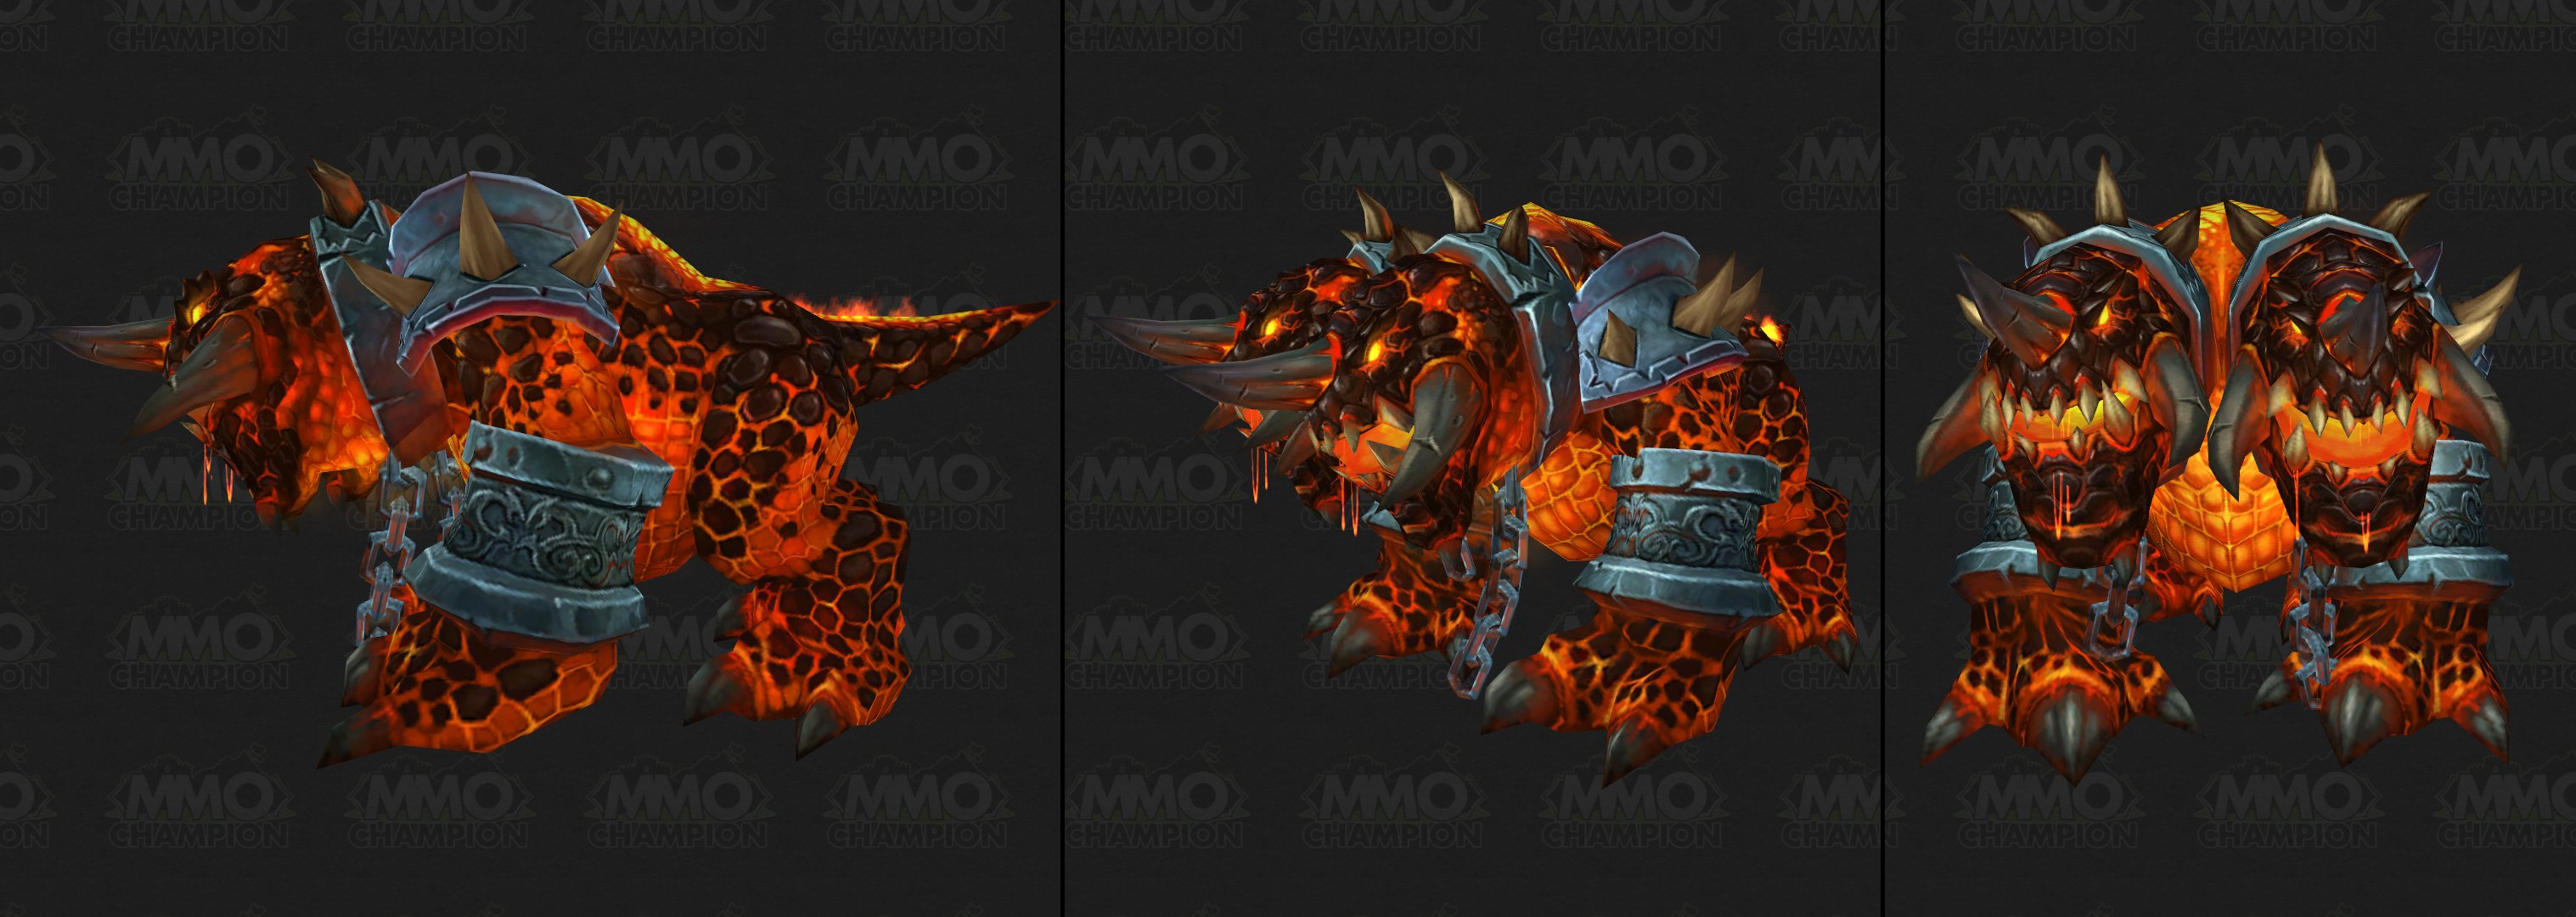 Warlords of Draenor Hunter Pets, Corehounds